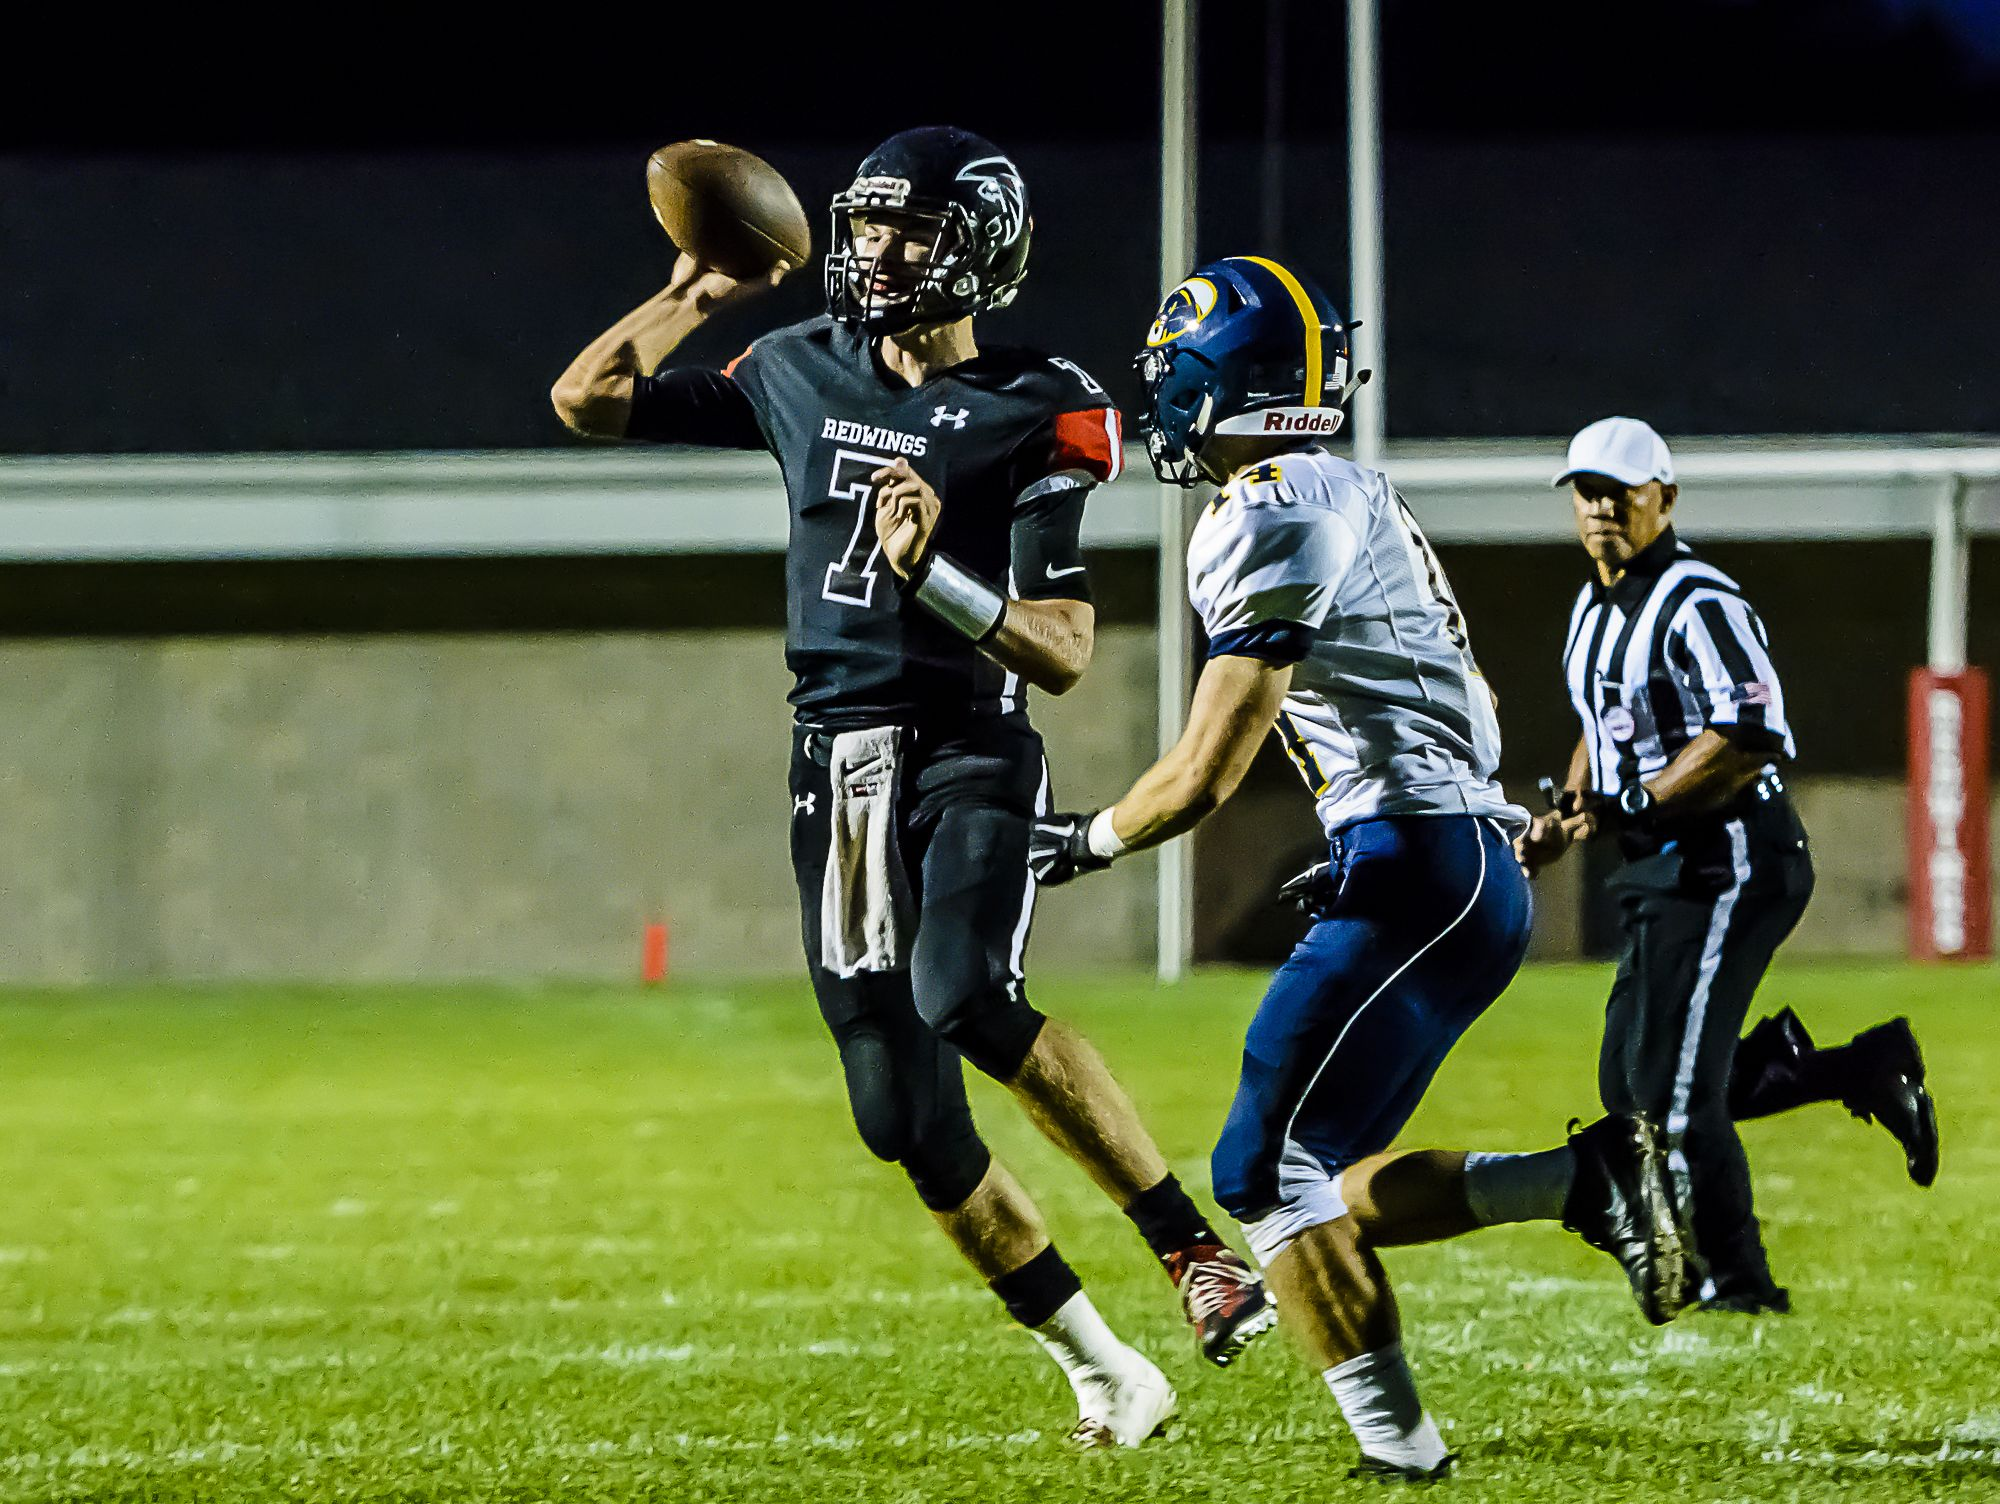 St. Johns quaterback Ross Feldpausch ,7, rolls out to pass into the endzone while being defended by Alan Smith of DeWitt early in the 2nd quarter of their game Friday October 7, 2016 in St. Johns. Feldpauschs' pass would fall incomplete. KEVIN W. FOWLER PHOTO